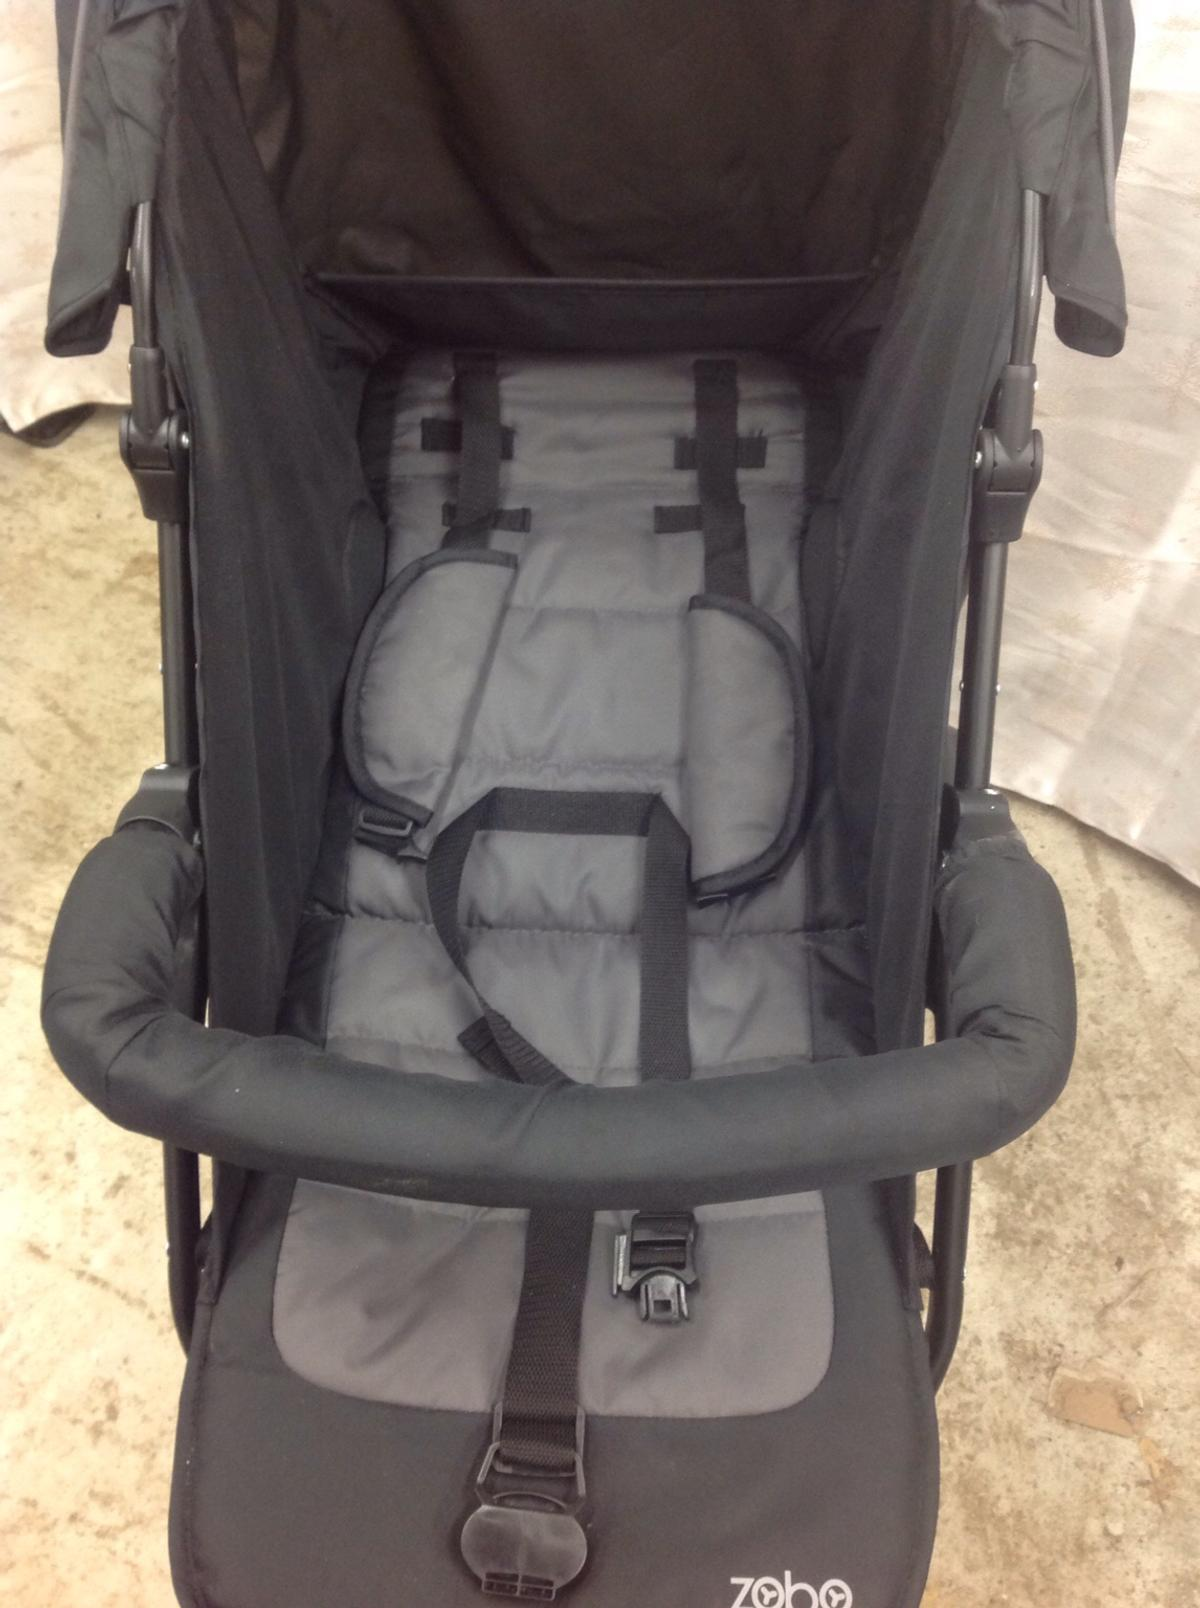 Zobo Three Wheeled Stroller In Black In Ig8 Redbridge For 35 00 For